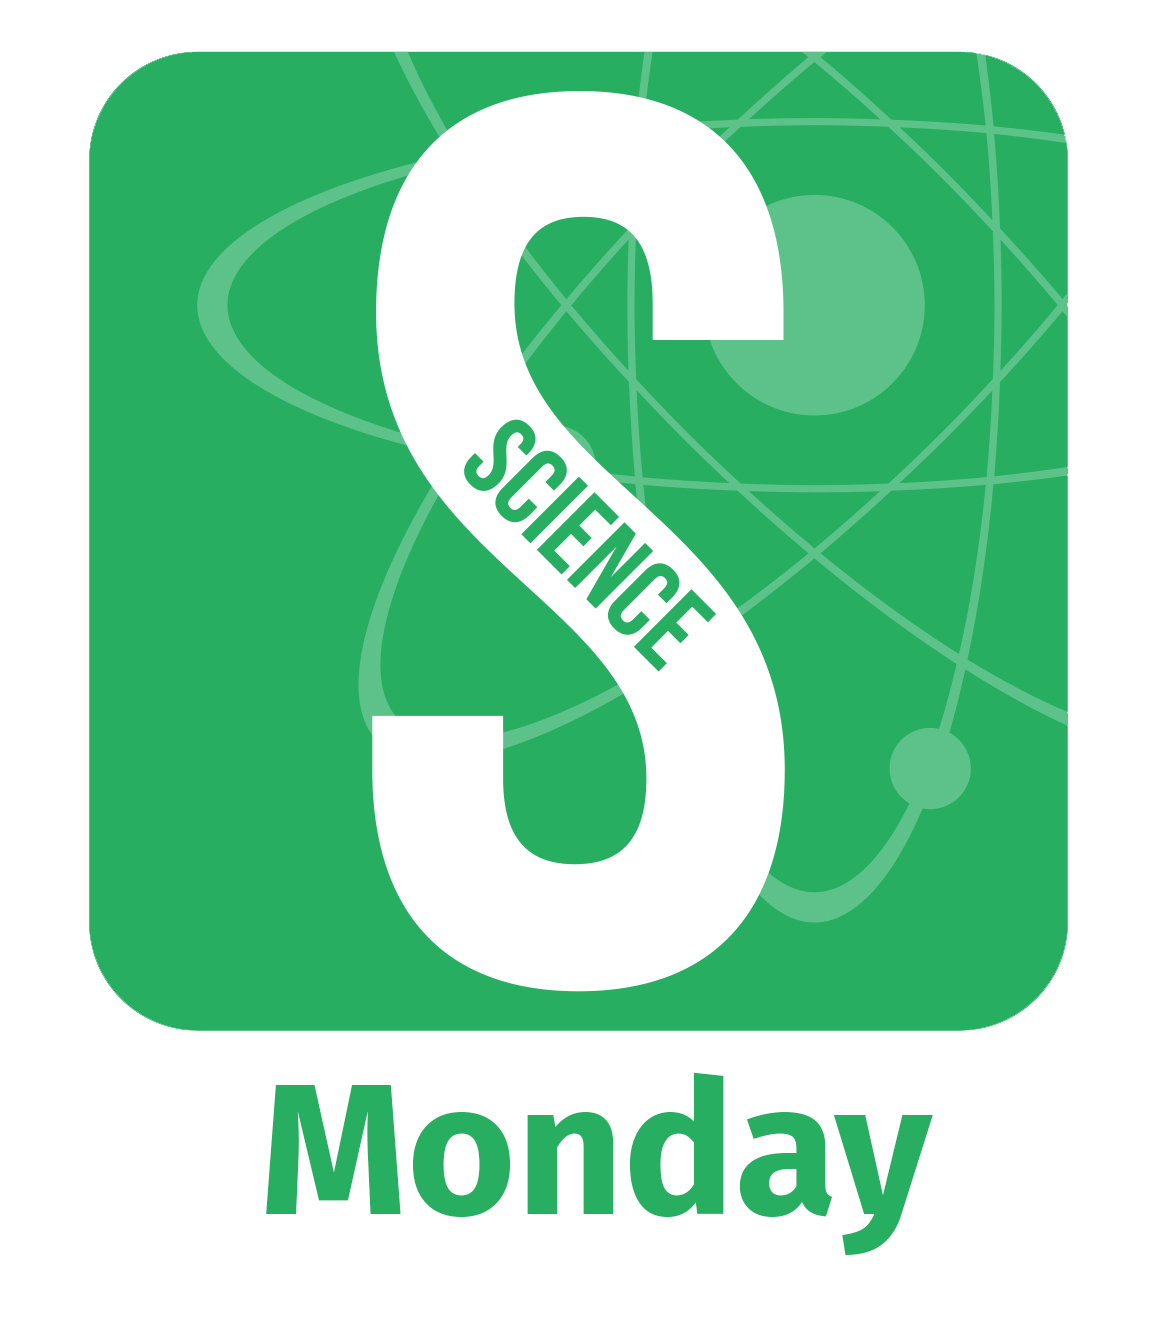 STEAM - Science Monday